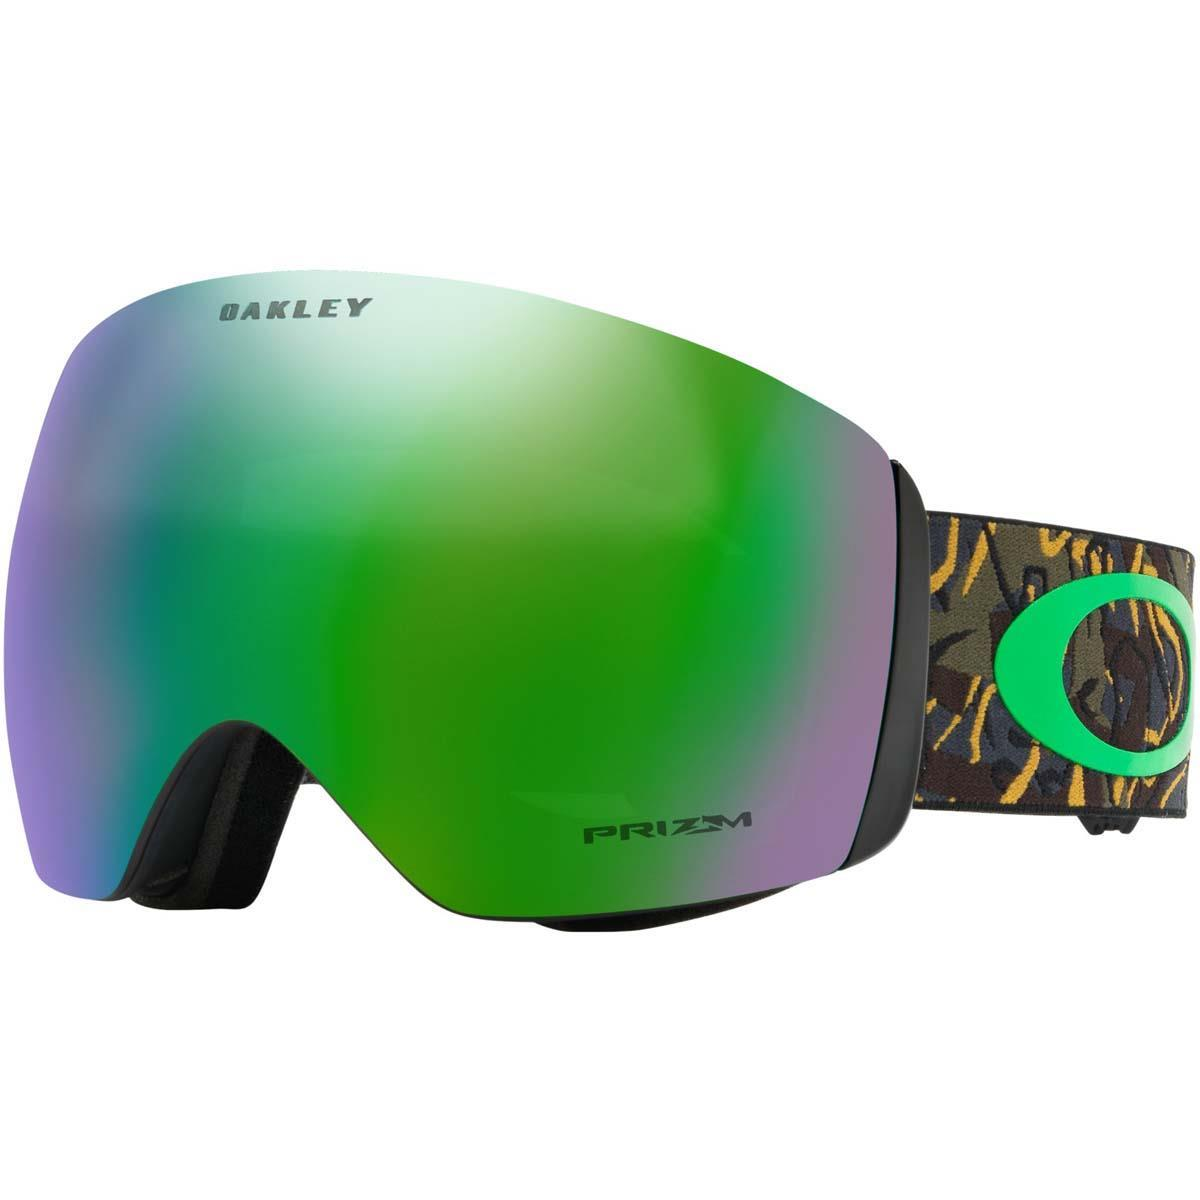 4a7ecf94139 Oakley Prizm Flight Deck Snow Goggles - OO7050